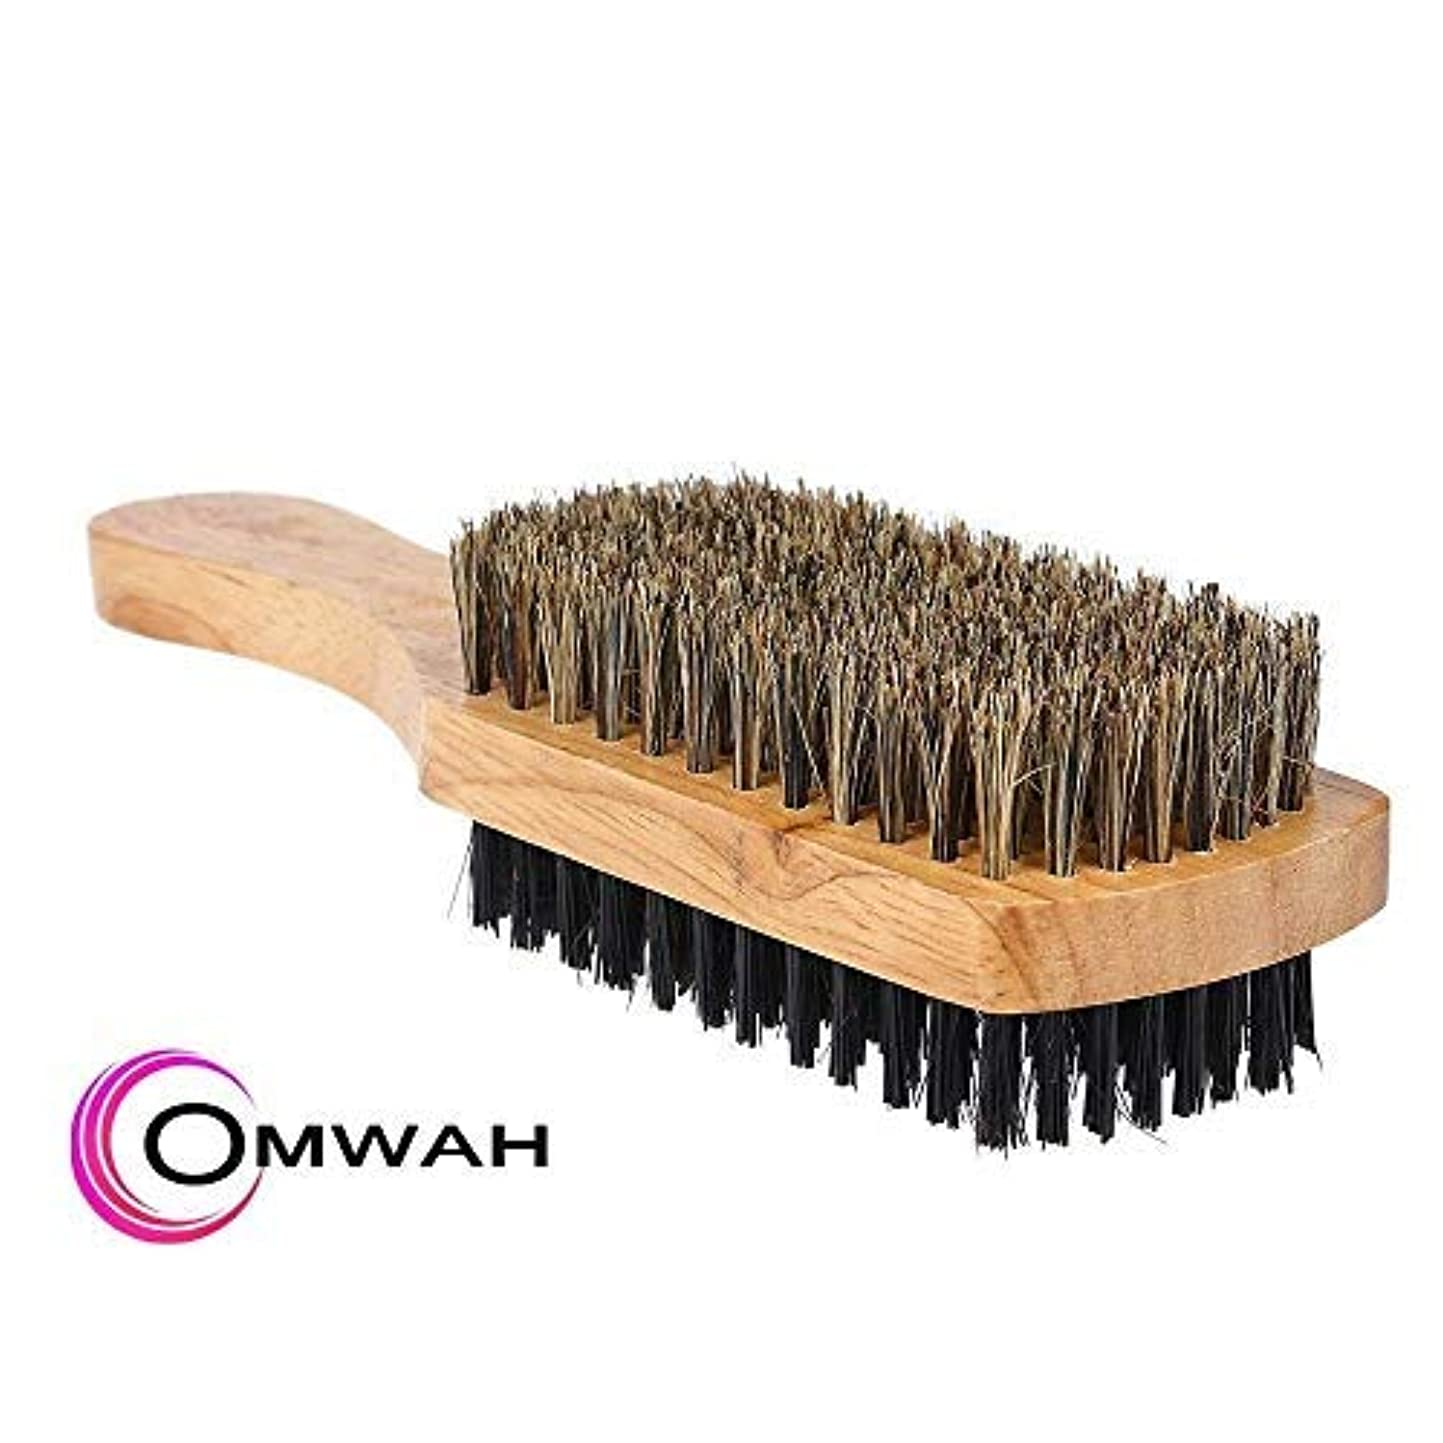 傾向がありますスマートいらいらさせるOmwah Double Sided 2 Sided Facial Hairbrush Styling Beard Brush Mens Boar Bristle [並行輸入品]